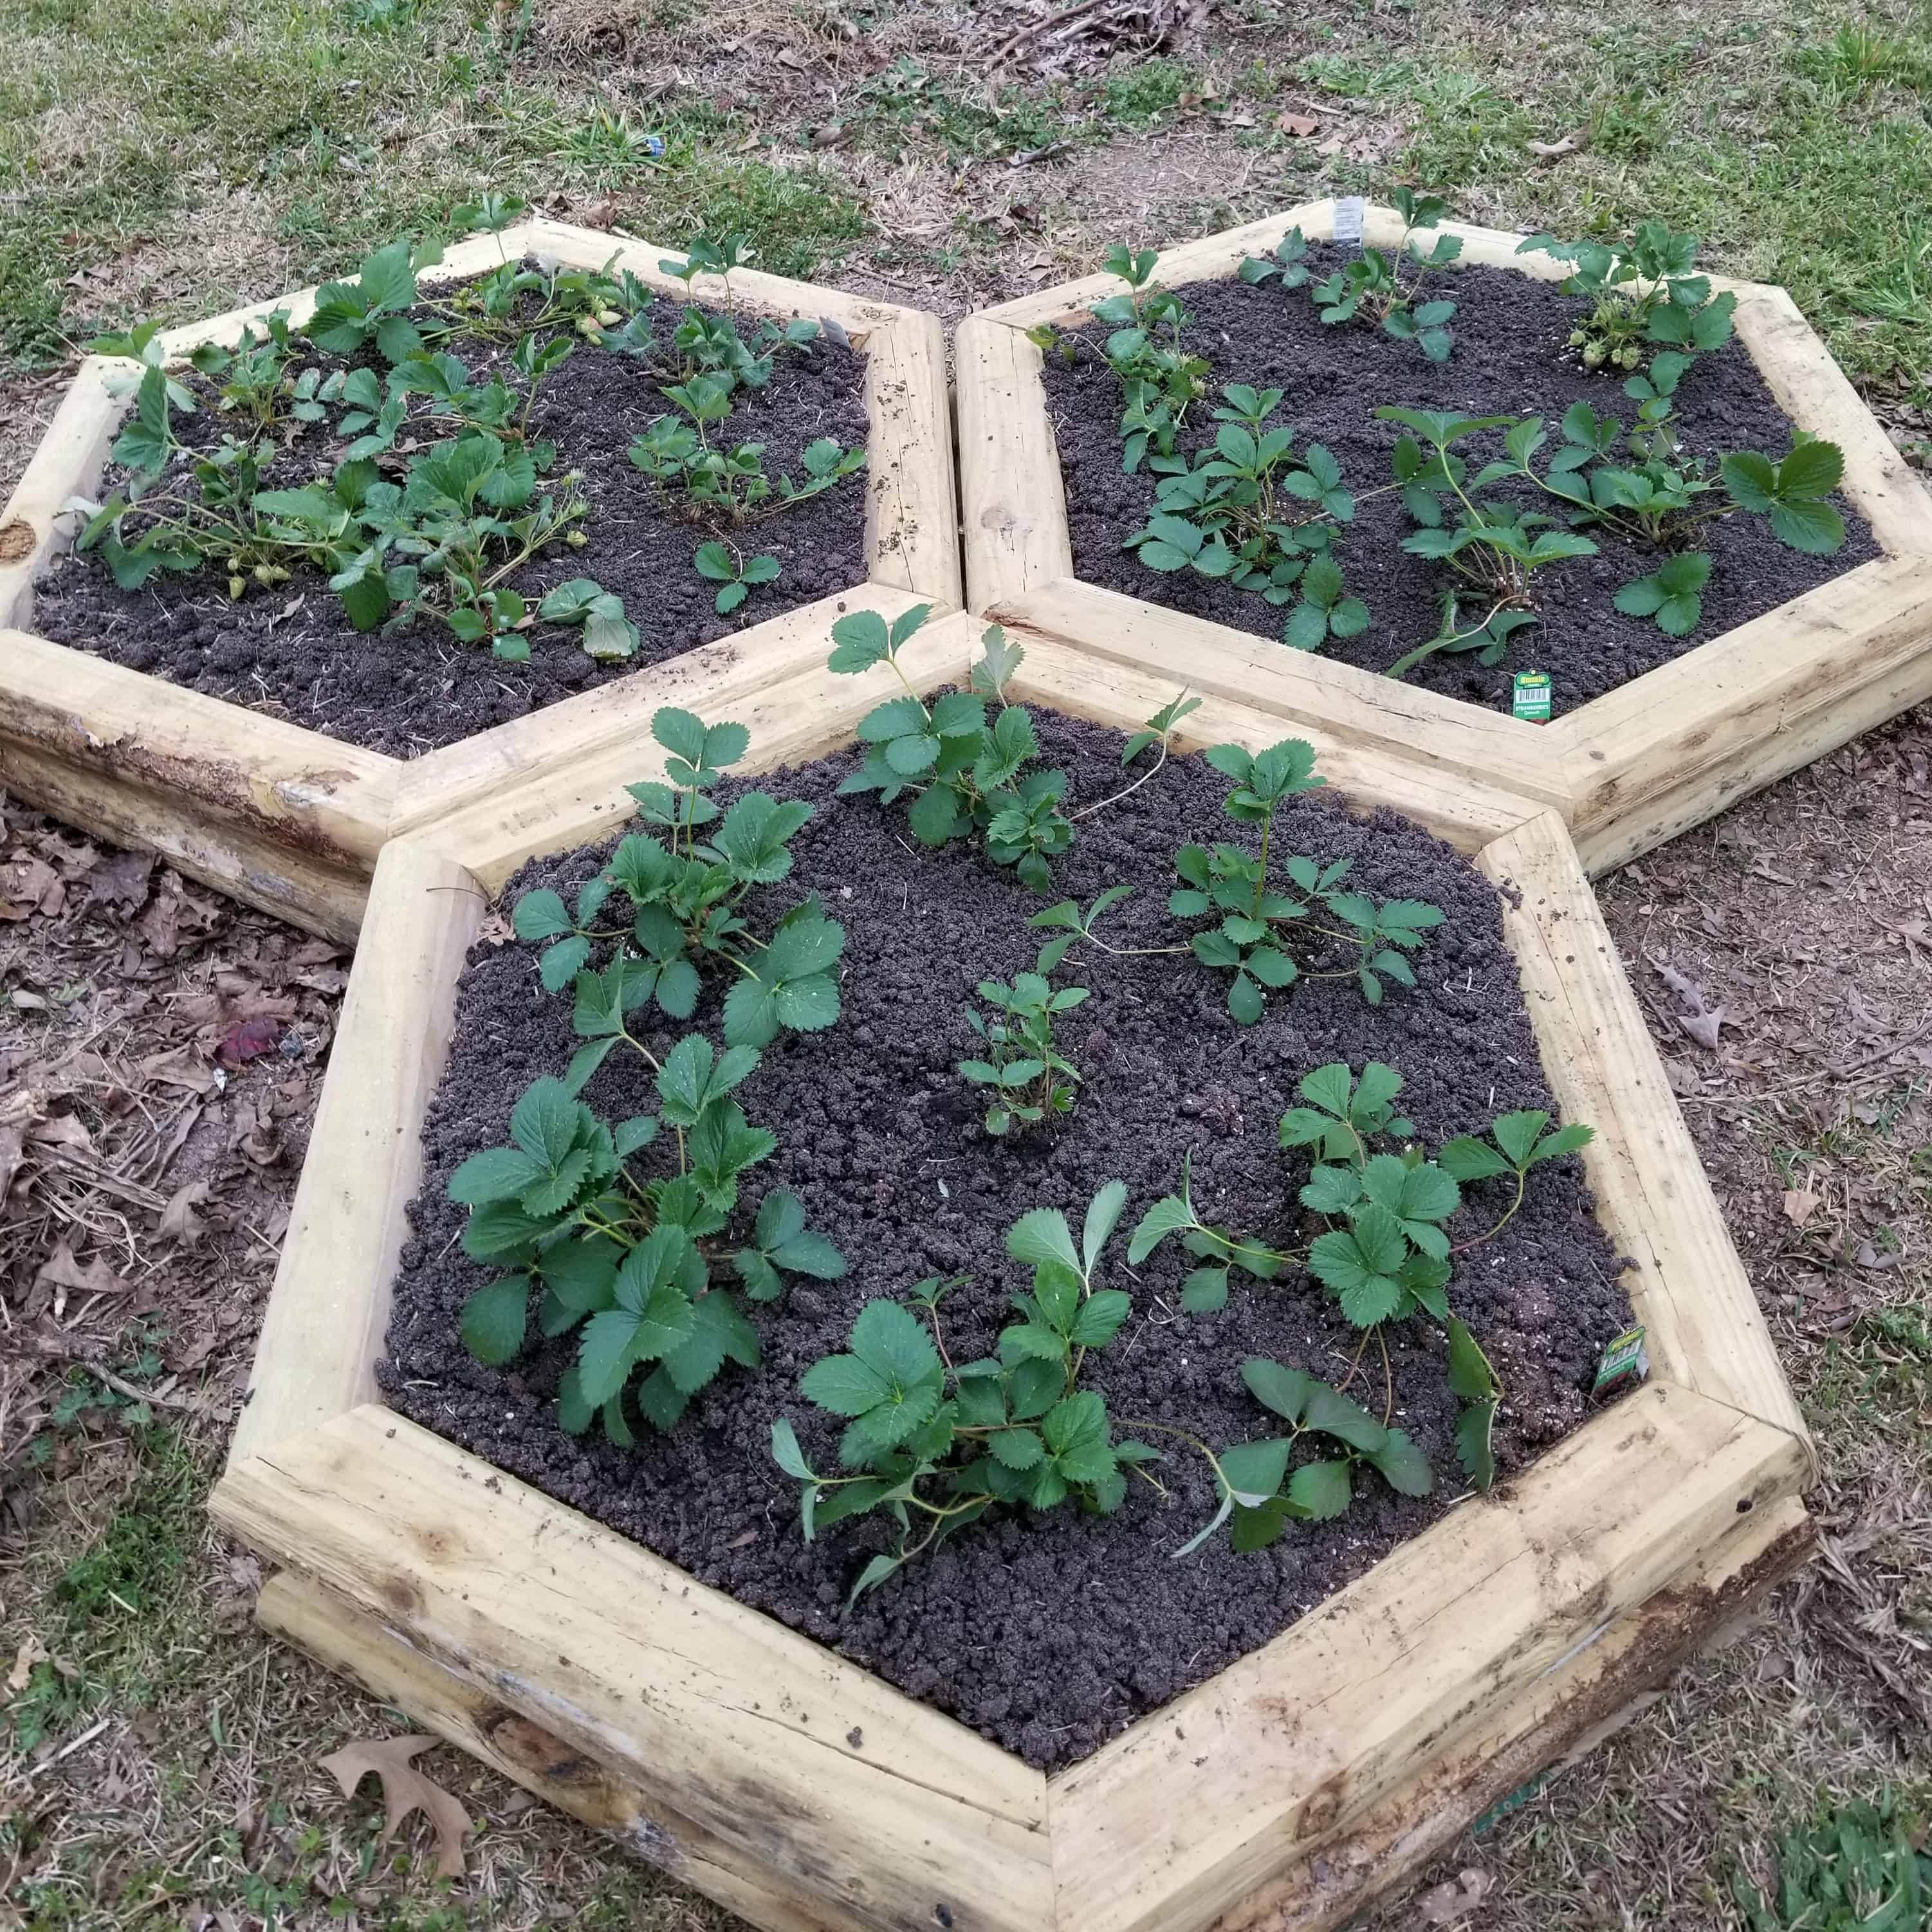 3 hexagon wood framed strawberry beds that resemble Mickey Mouse head and ears